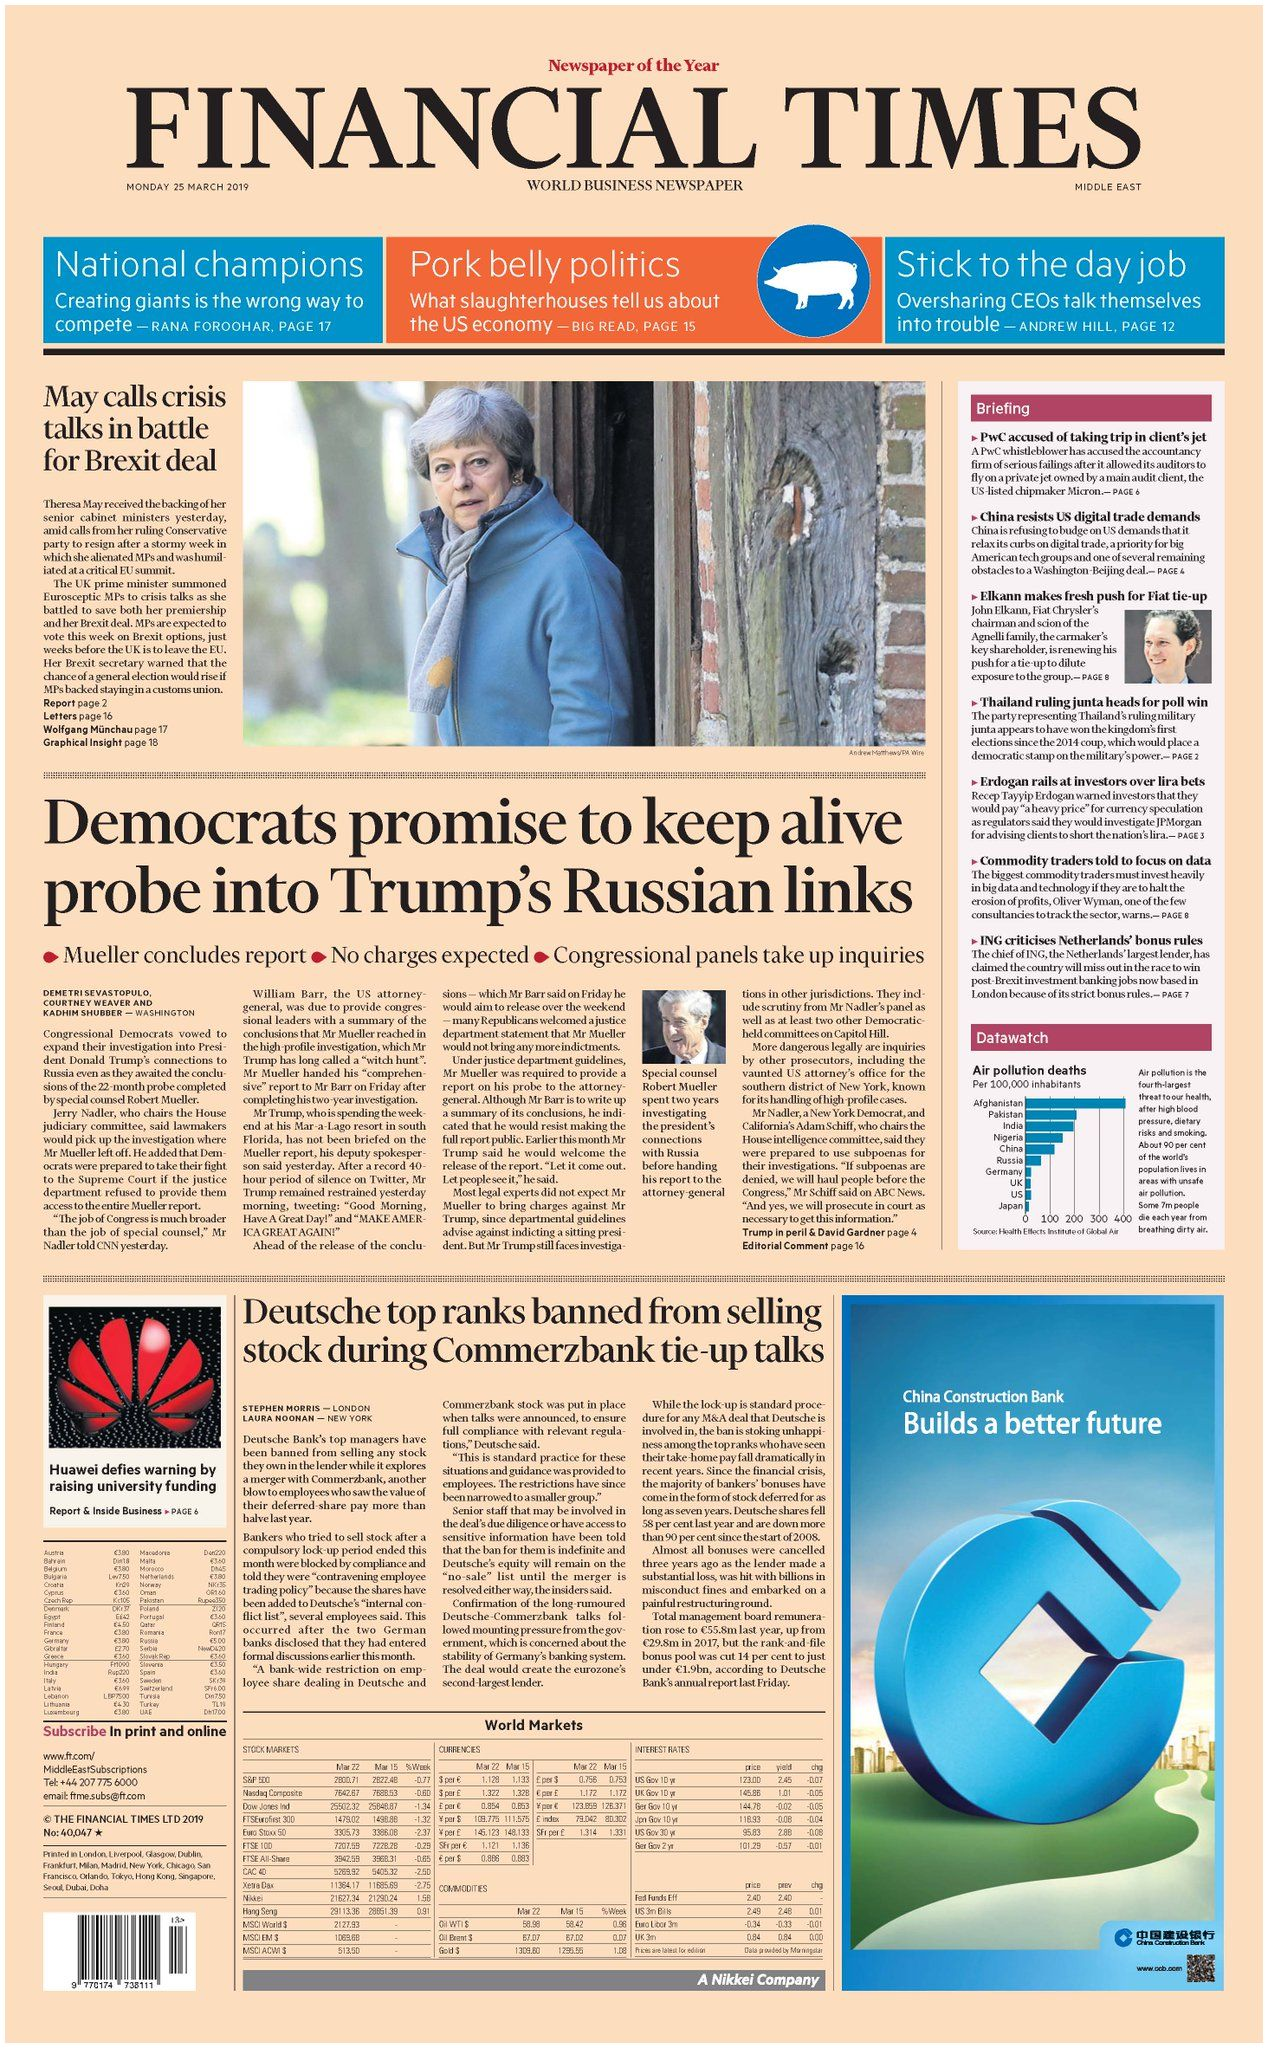 """Financial Times on Twitter """"Just published front page of the Financial Times international edition Monday 25 March """""""